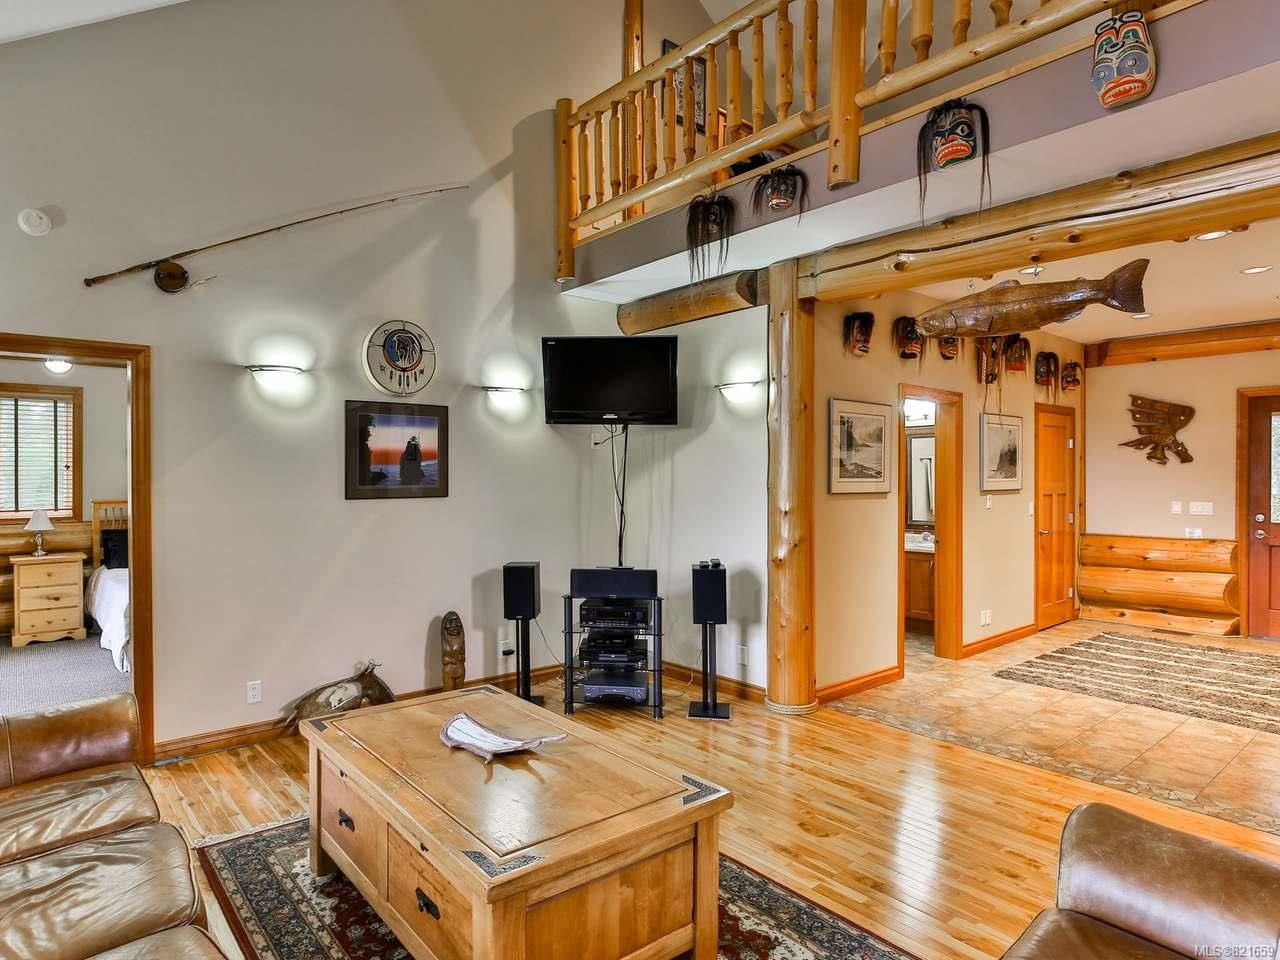 Photo 8: Photos: 1049 Helen Rd in UCLUELET: PA Ucluelet House for sale (Port Alberni)  : MLS®# 821659